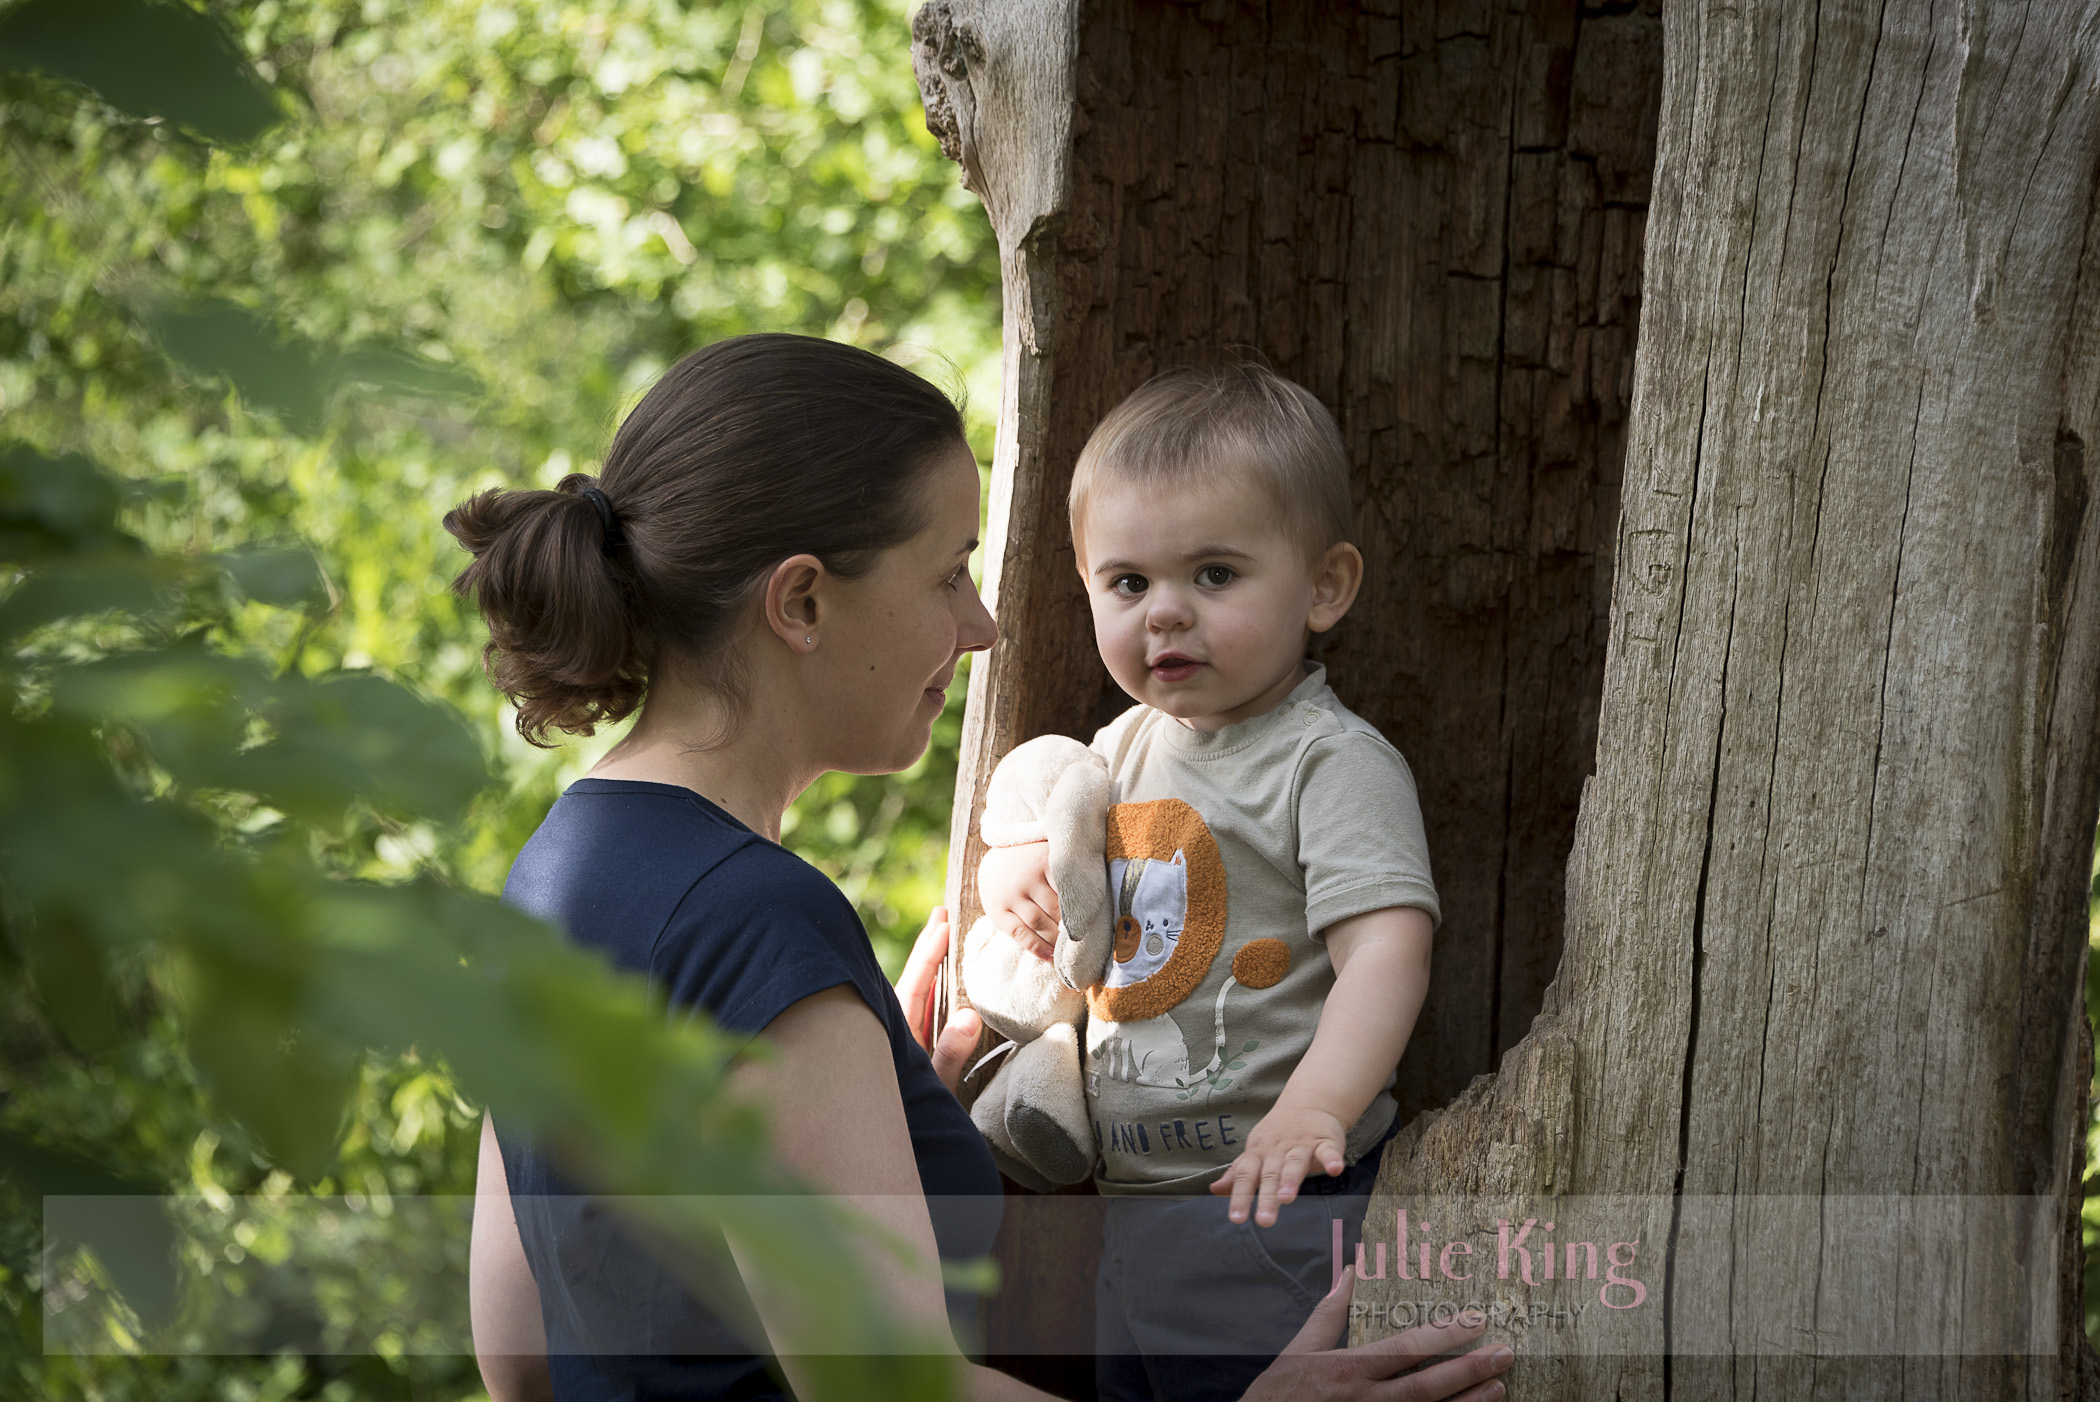 Portraits in Hanbury woods